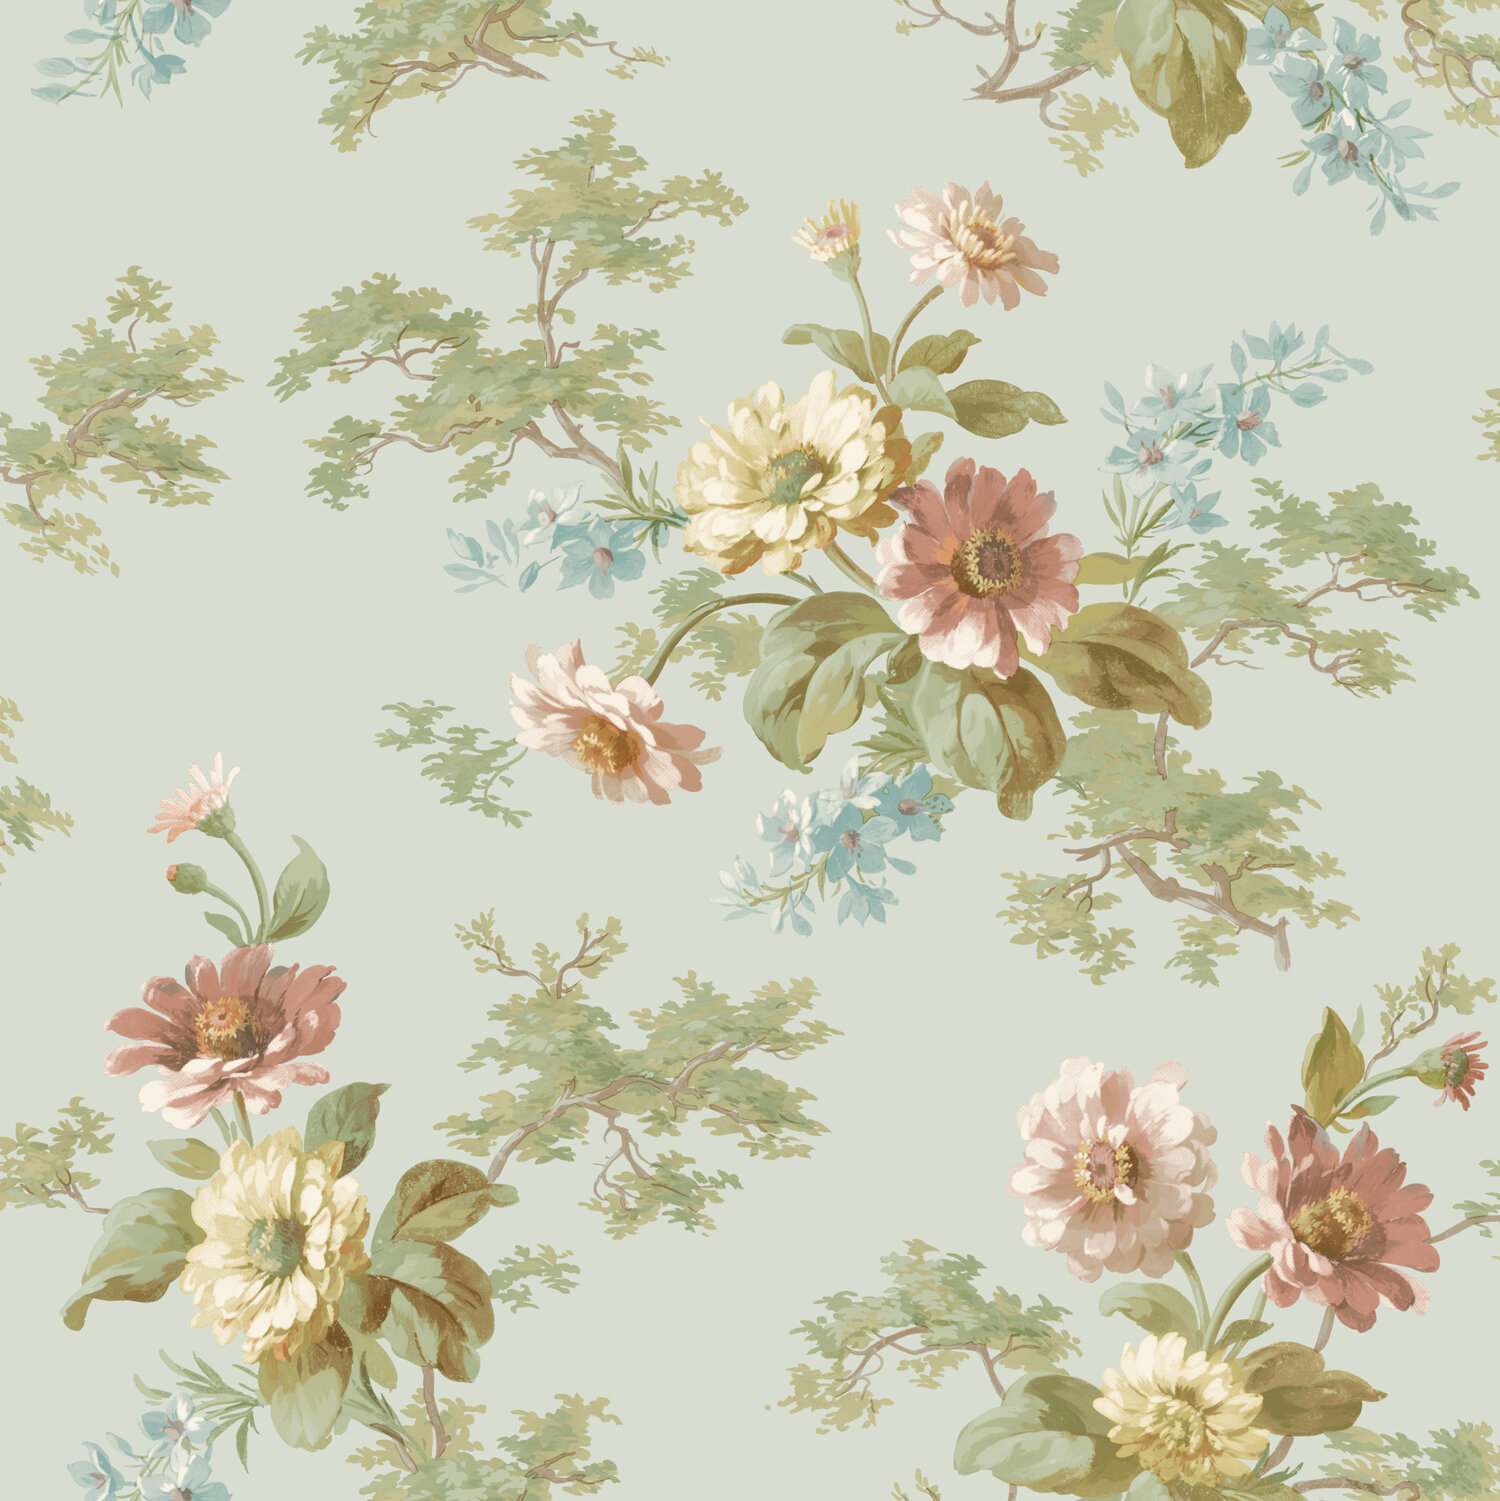 Ophelia Co Chidi 33 X 20 5 Floral 3d Embossed Wallpaper Wayfair